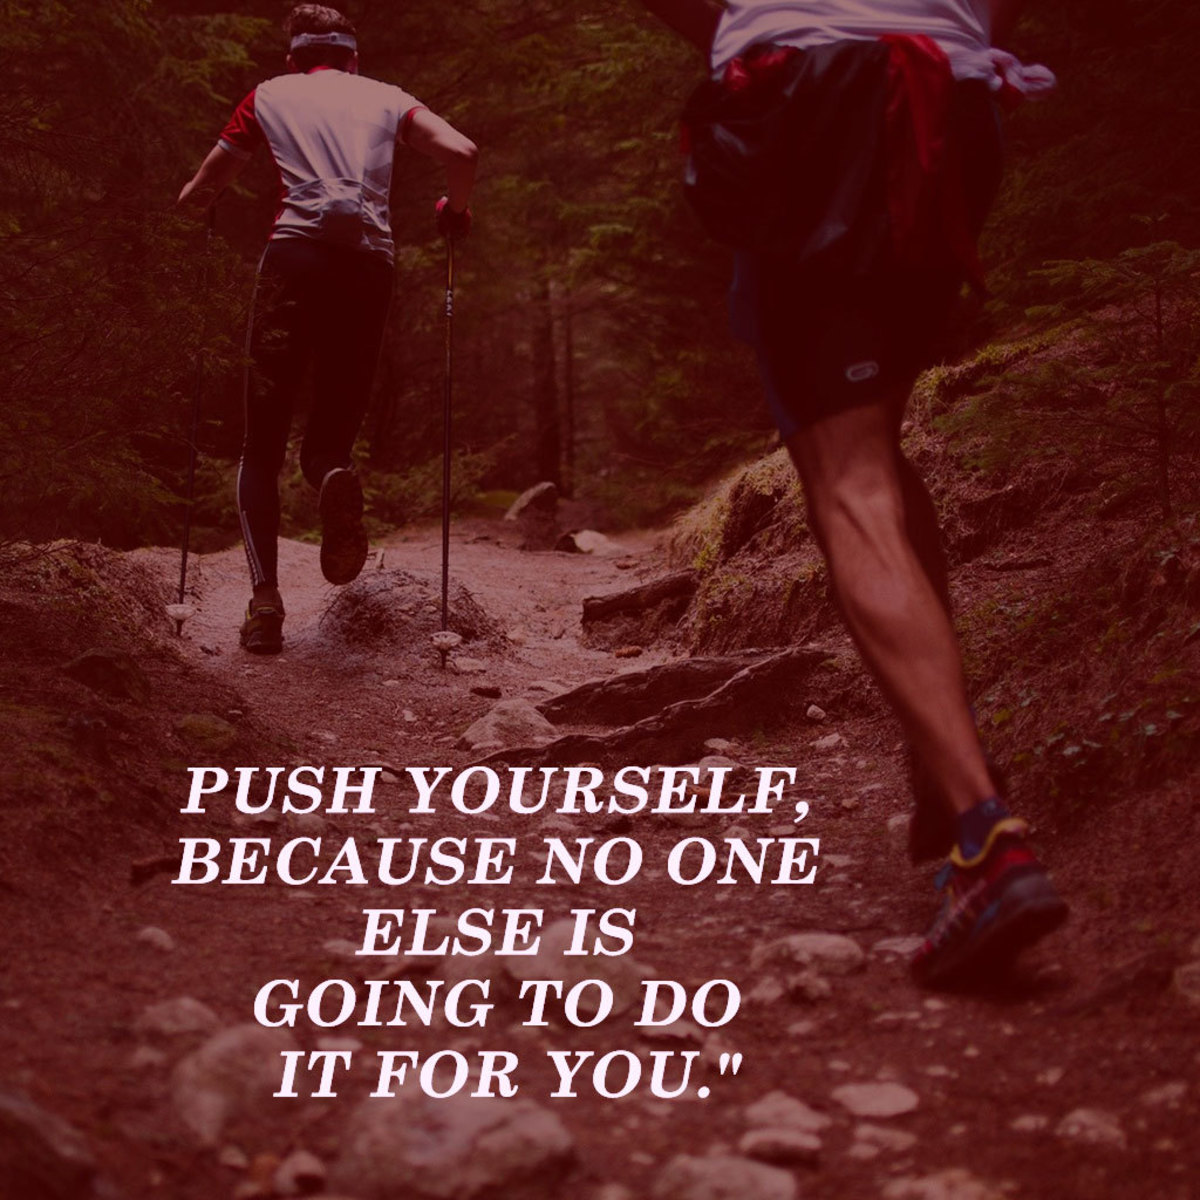 """""""Push yourself, because no one else is going to do it for you."""" ― Unknown"""